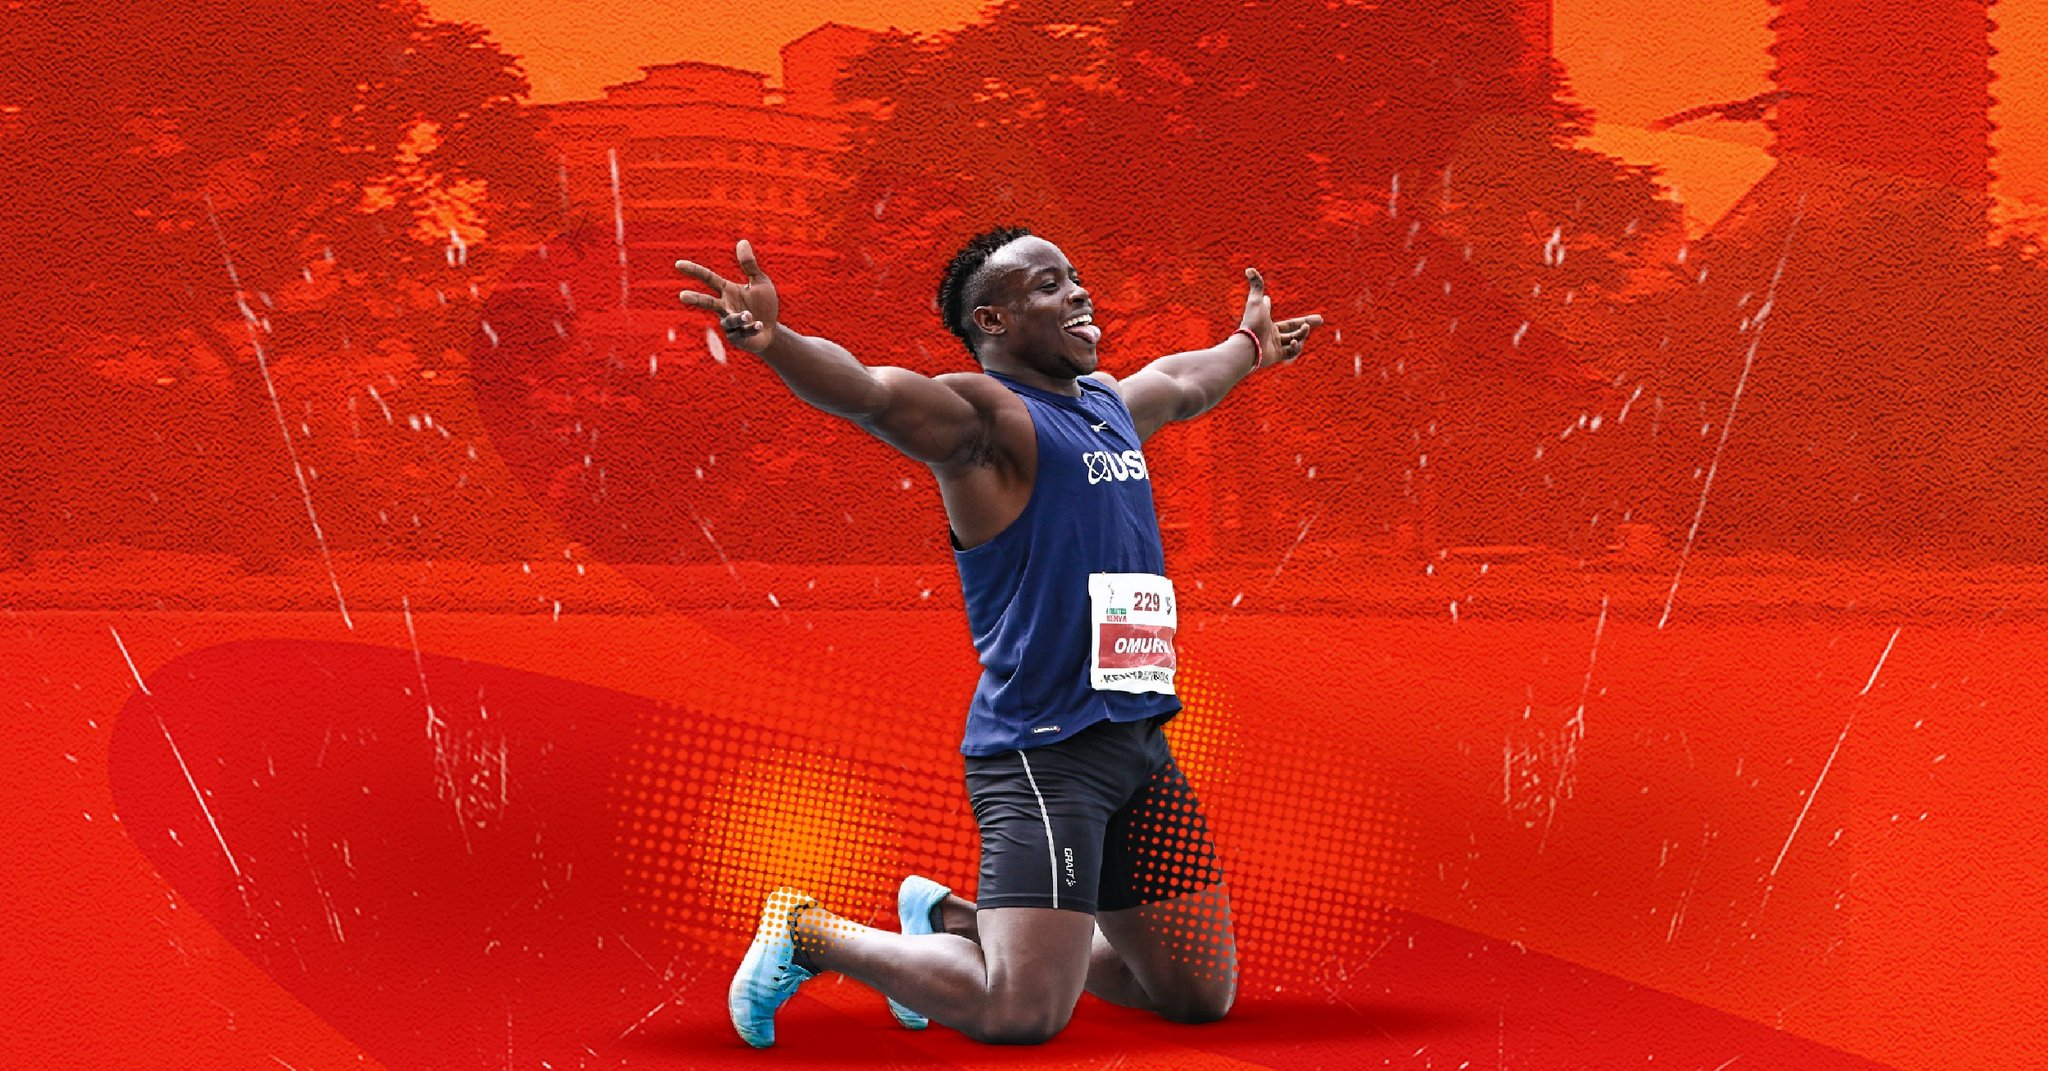 Ferdinand Omanyala runs the second fastest time in the world